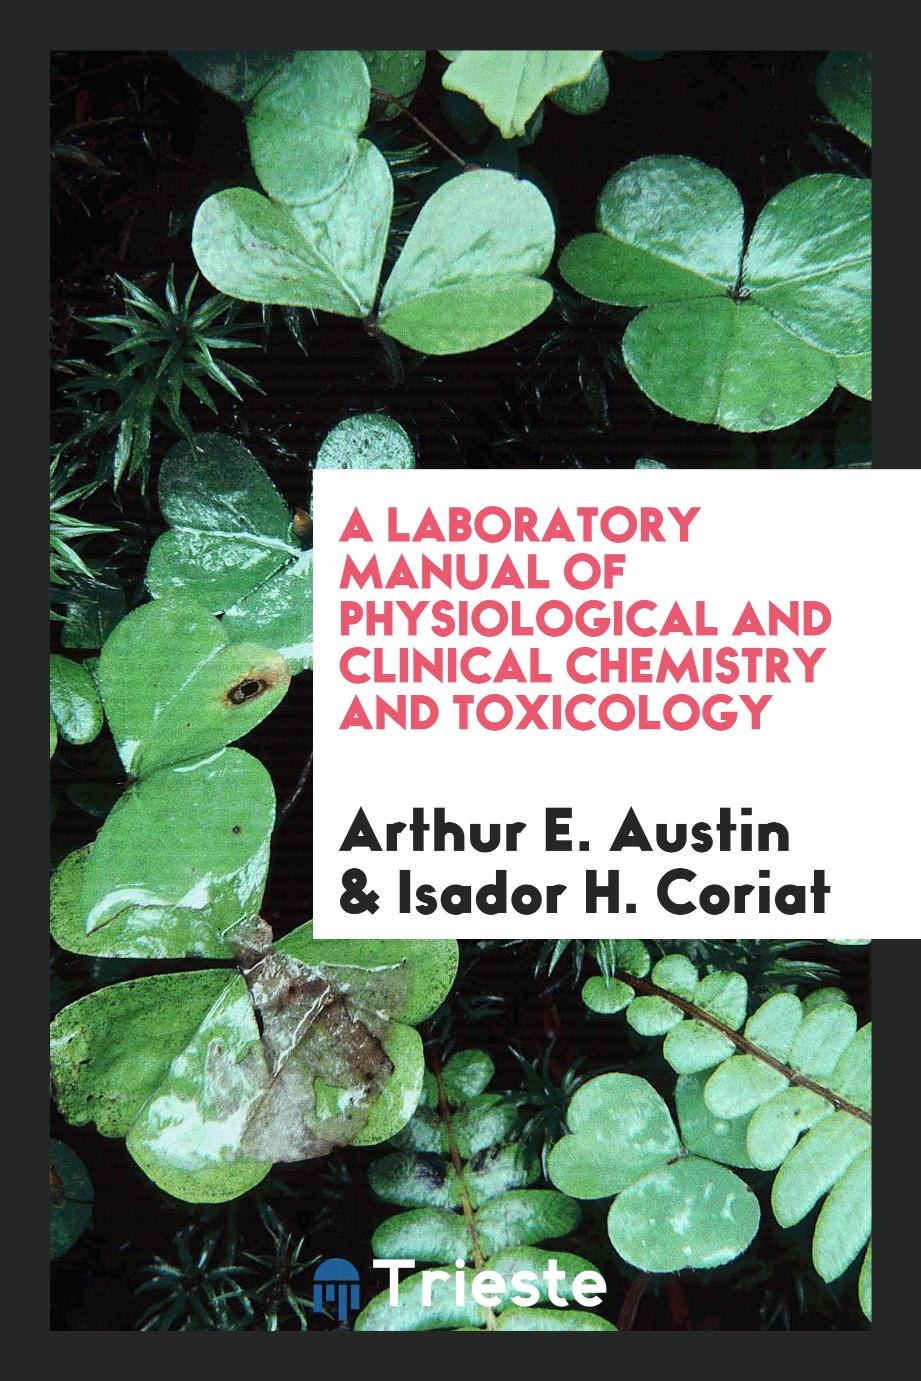 A Laboratory Manual of Physiological and Clinical Chemistry and Toxicology